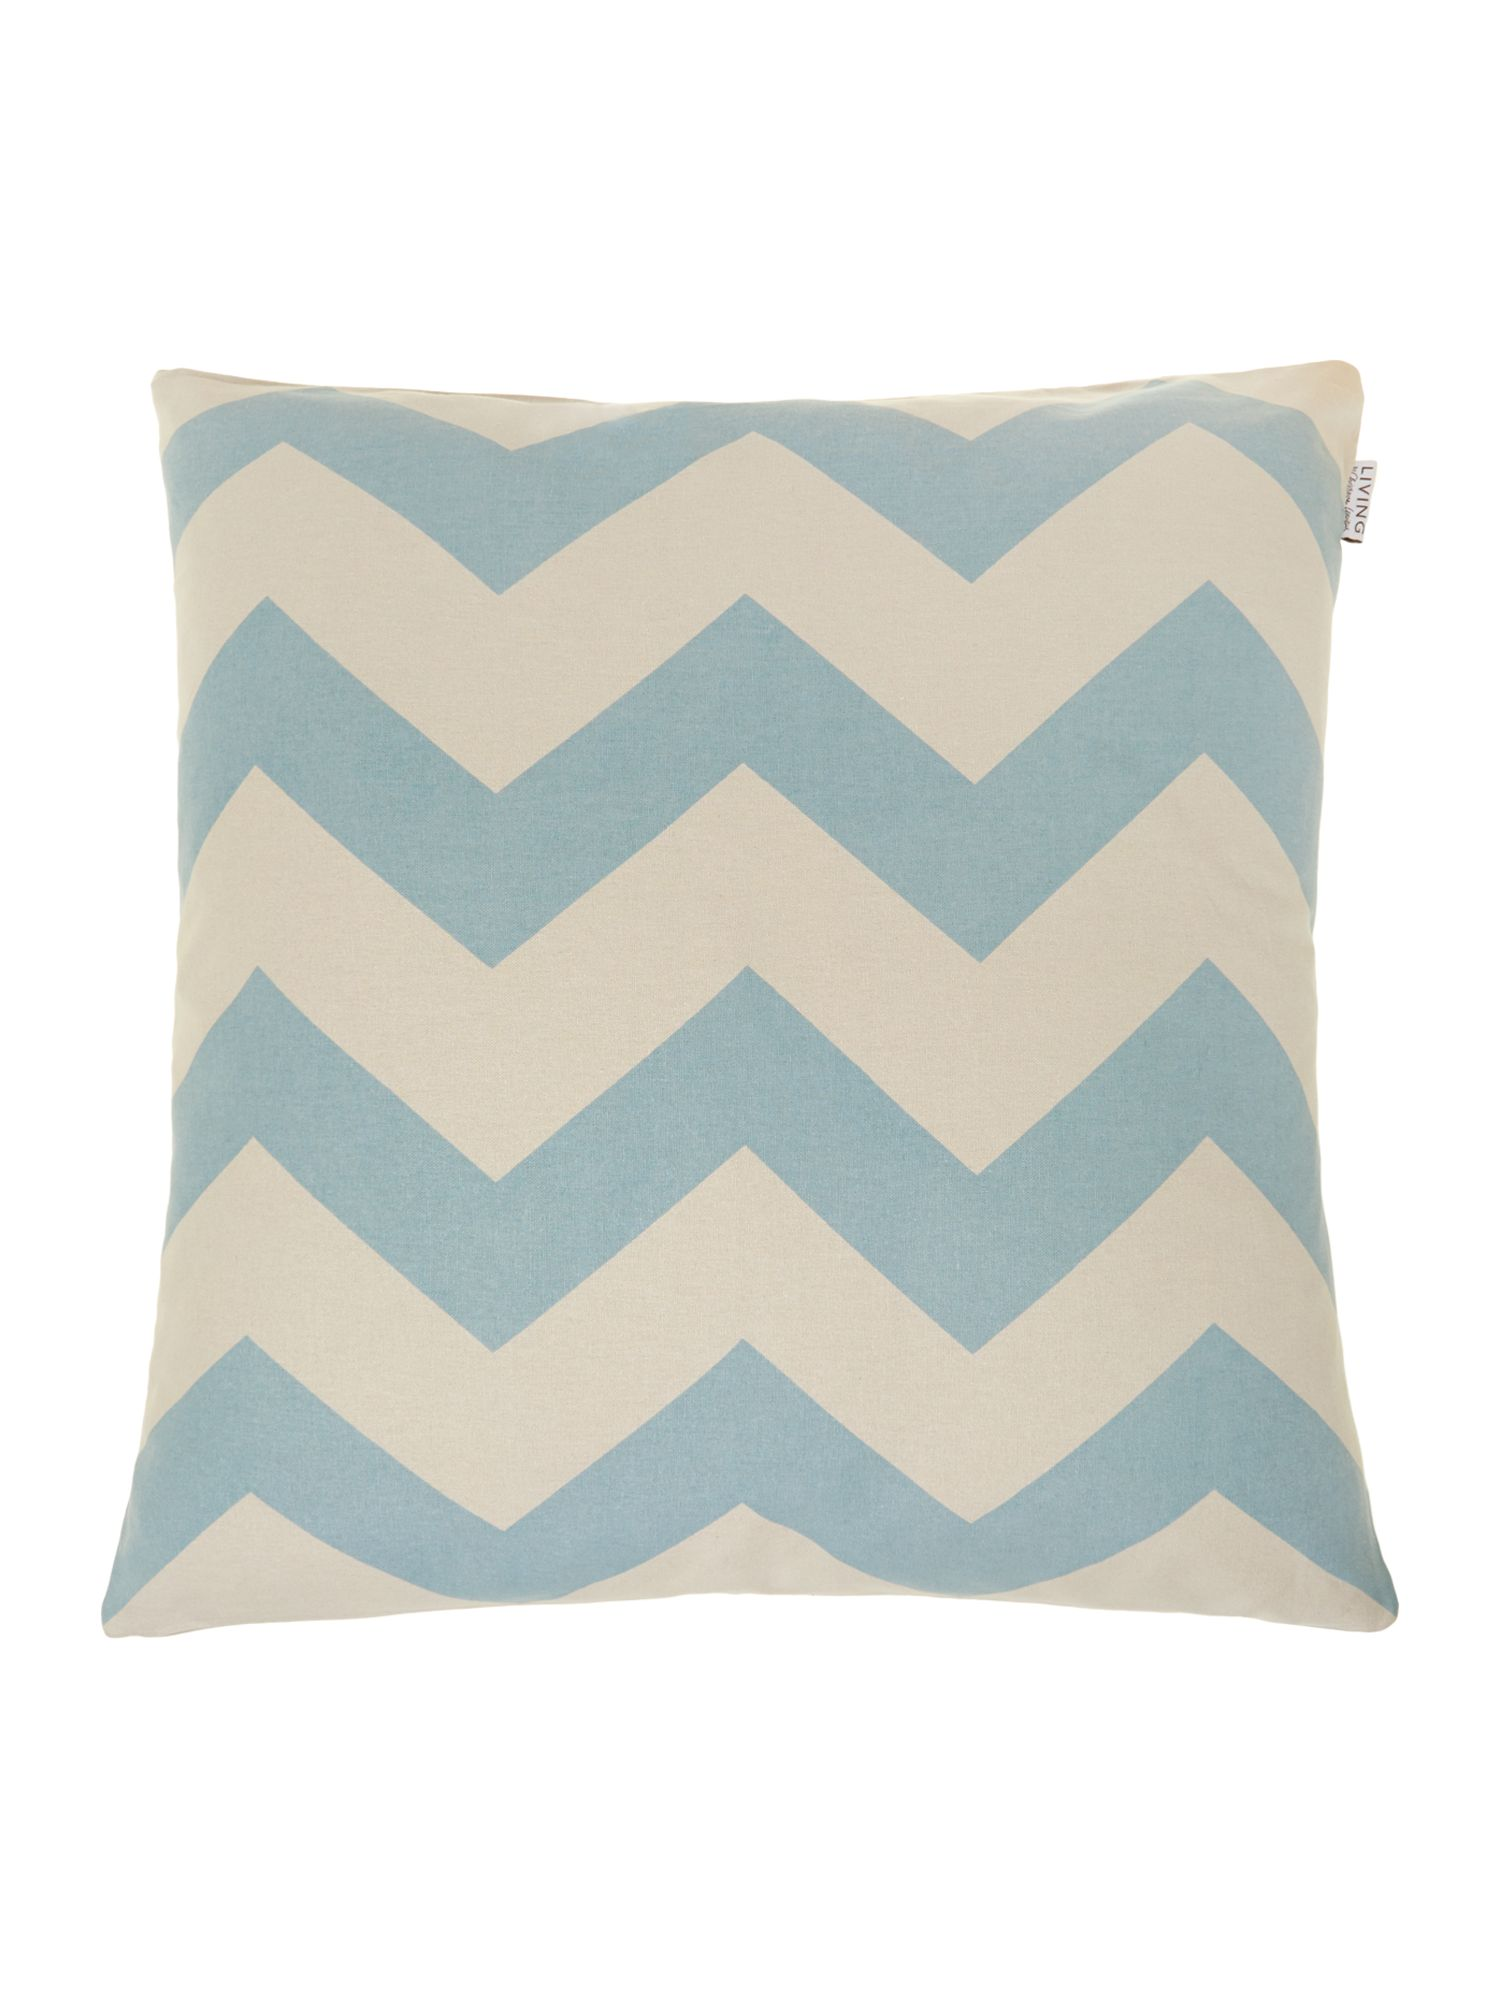 Slate oversized chevron print cushion